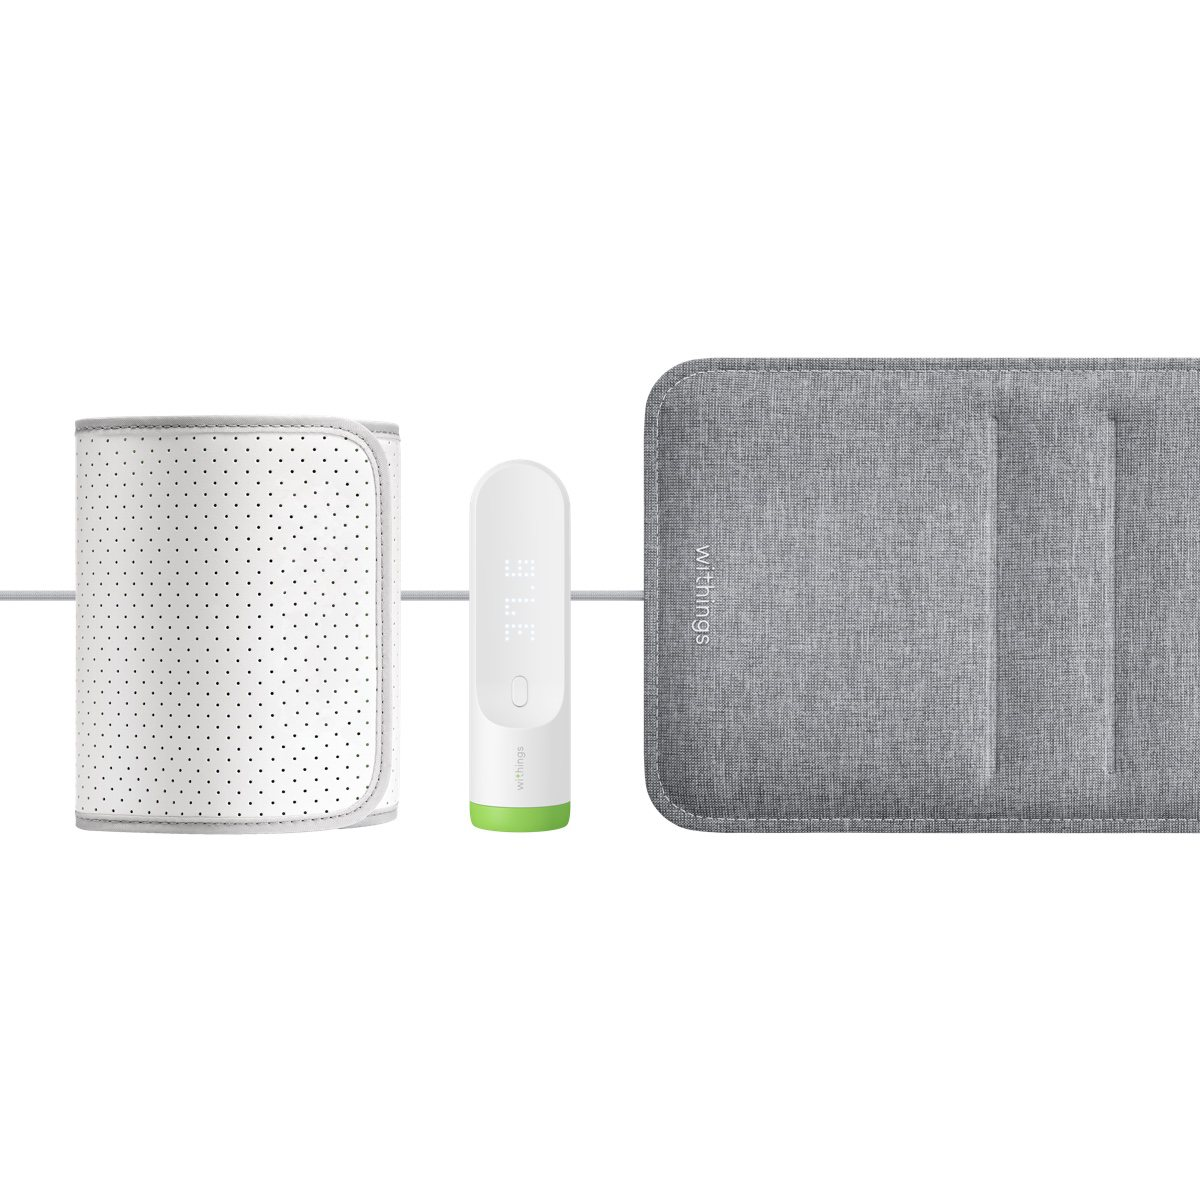 Sleep Sensor, Blood Pressure Monitor & Thermometer by Withings